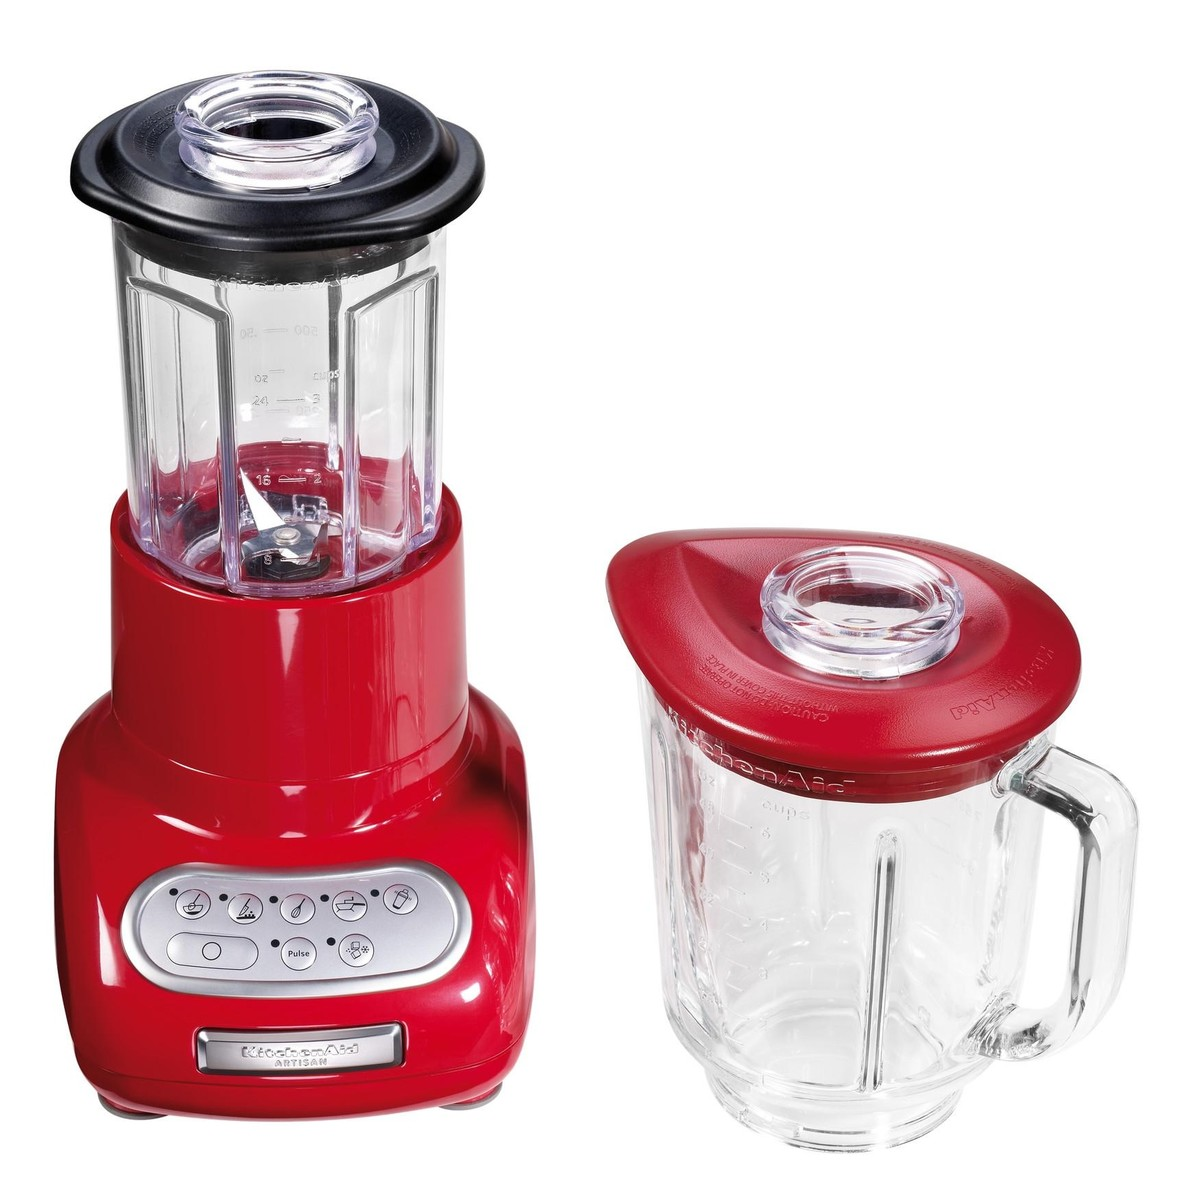 Artisan 5ksb5553 blender kitchenaid for Kitchen perfected blender